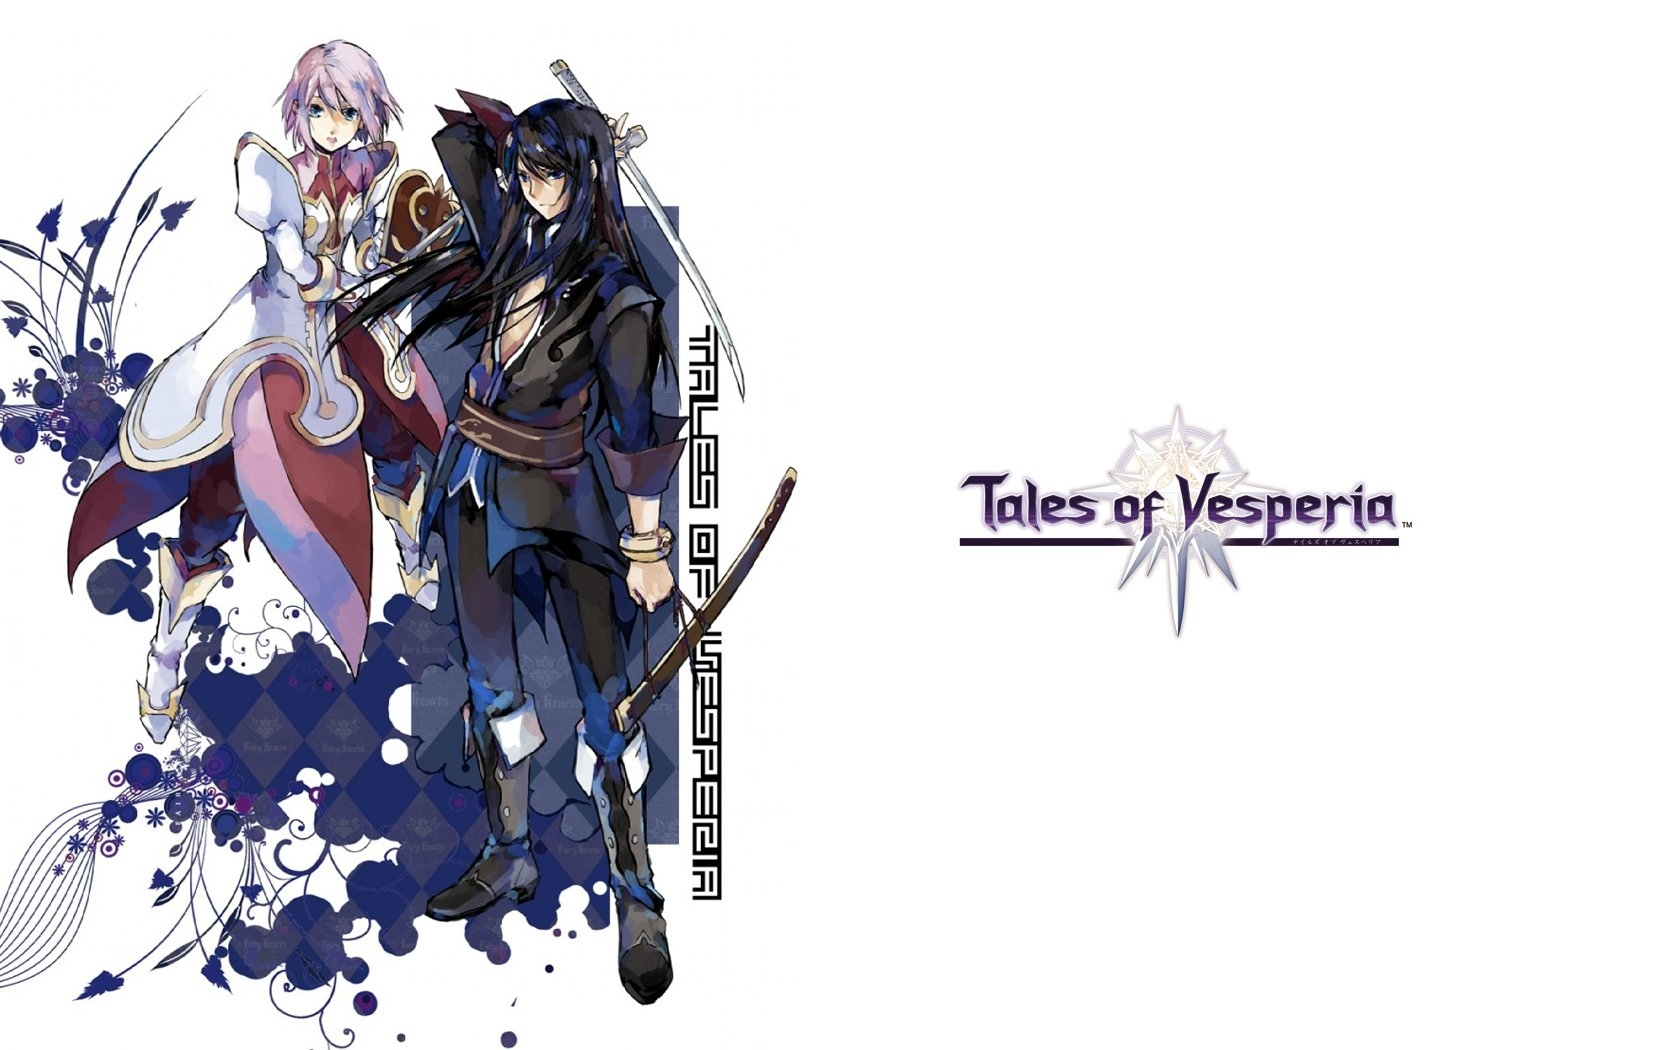 10 tales of vesperia hd wallpapers | background images - wallpaper abyss